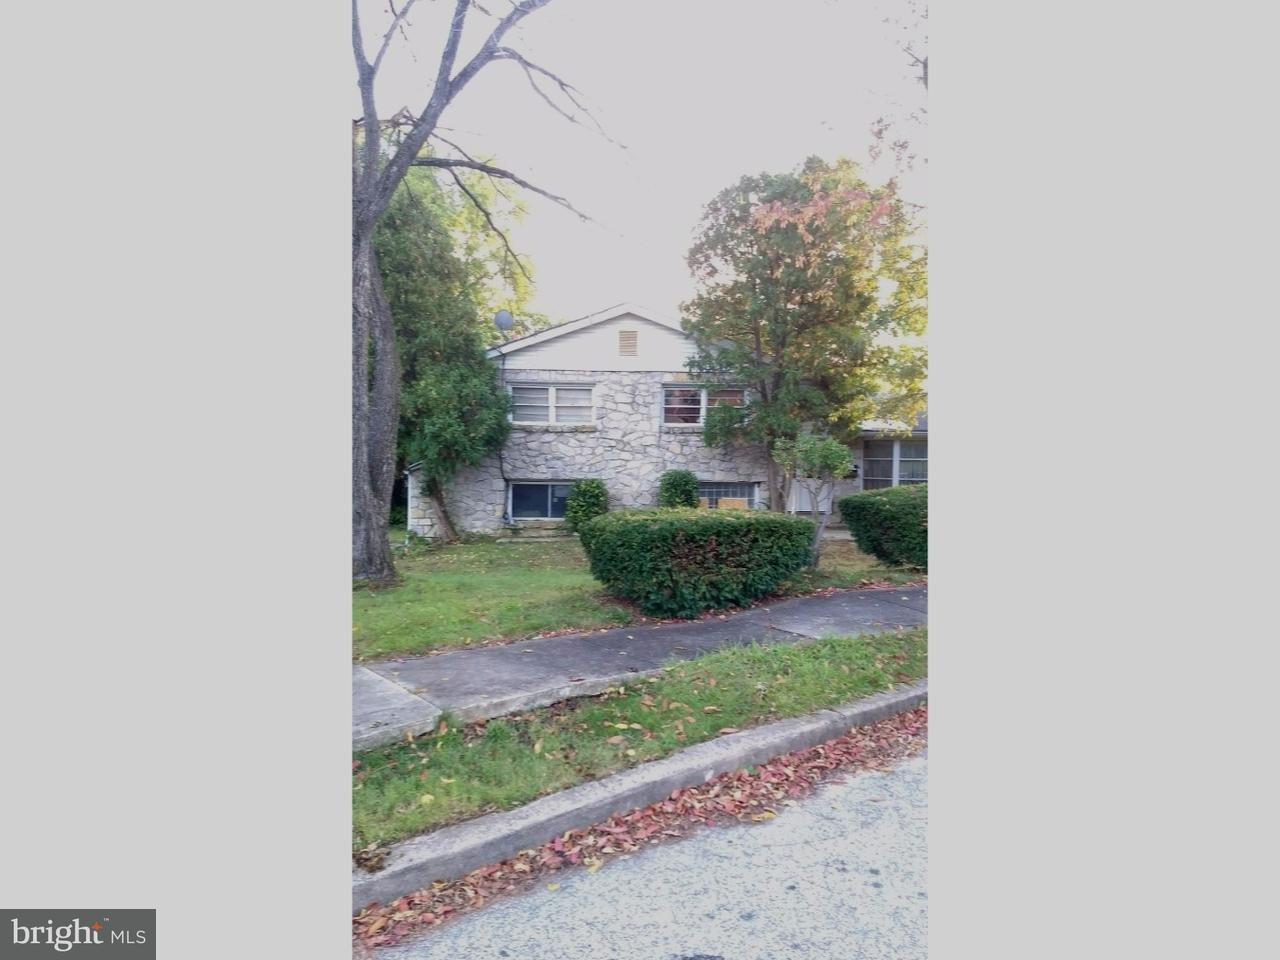 7138 N Mount Pleasant Philadelphia , PA 19119